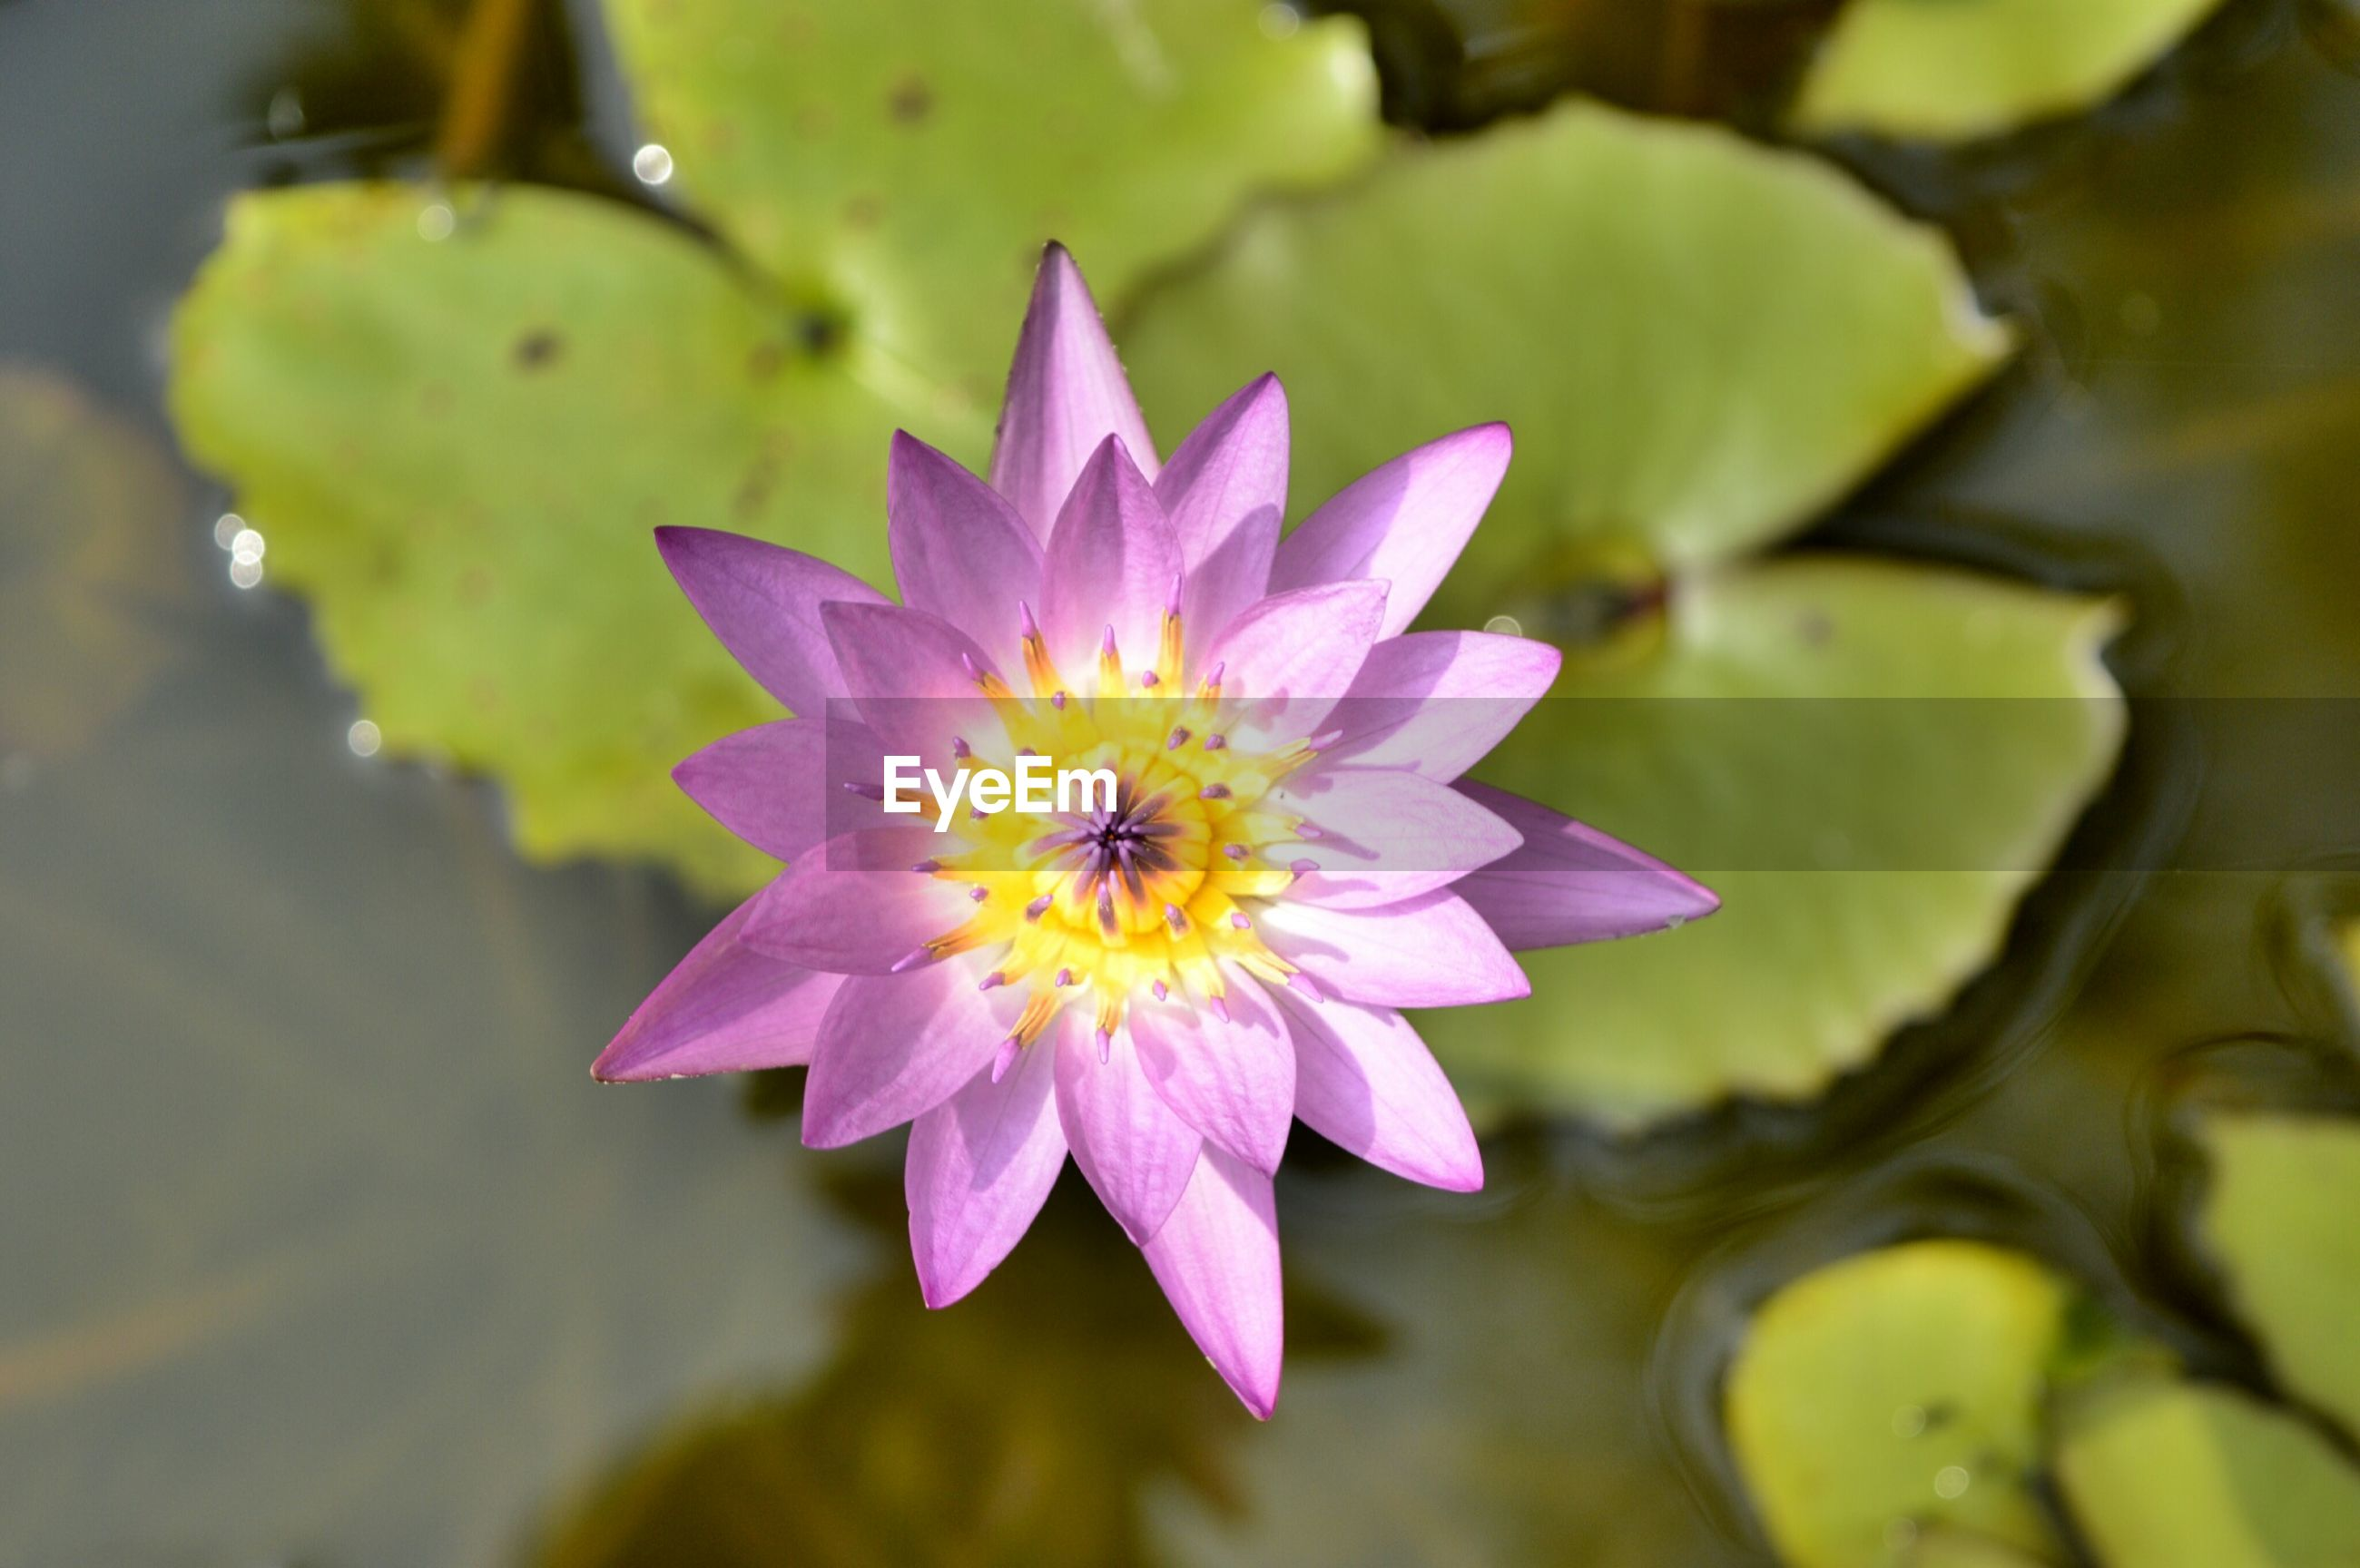 flower, petal, freshness, flower head, fragility, water lily, single flower, beauty in nature, pollen, close-up, growth, purple, blooming, nature, pond, focus on foreground, plant, leaf, pink color, high angle view